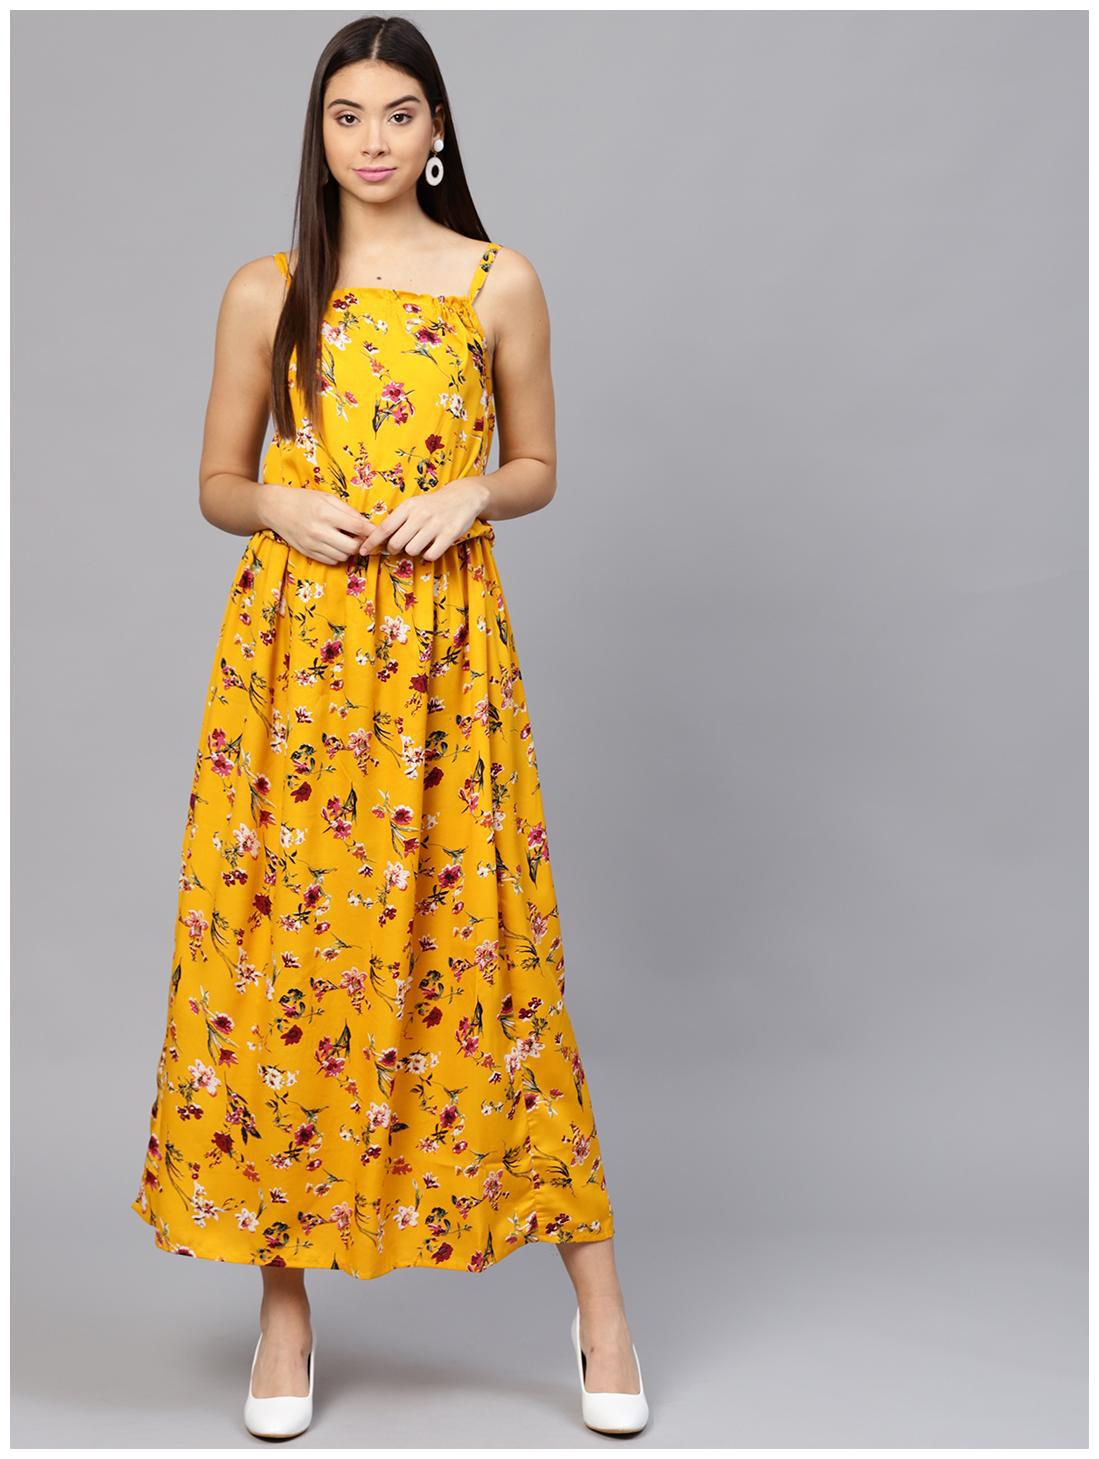 https://assetscdn1.paytm.com/images/catalog/product/A/AP/APPAASI-YELLOW-BHUM69246569B4554/1563070327049_0..jpg